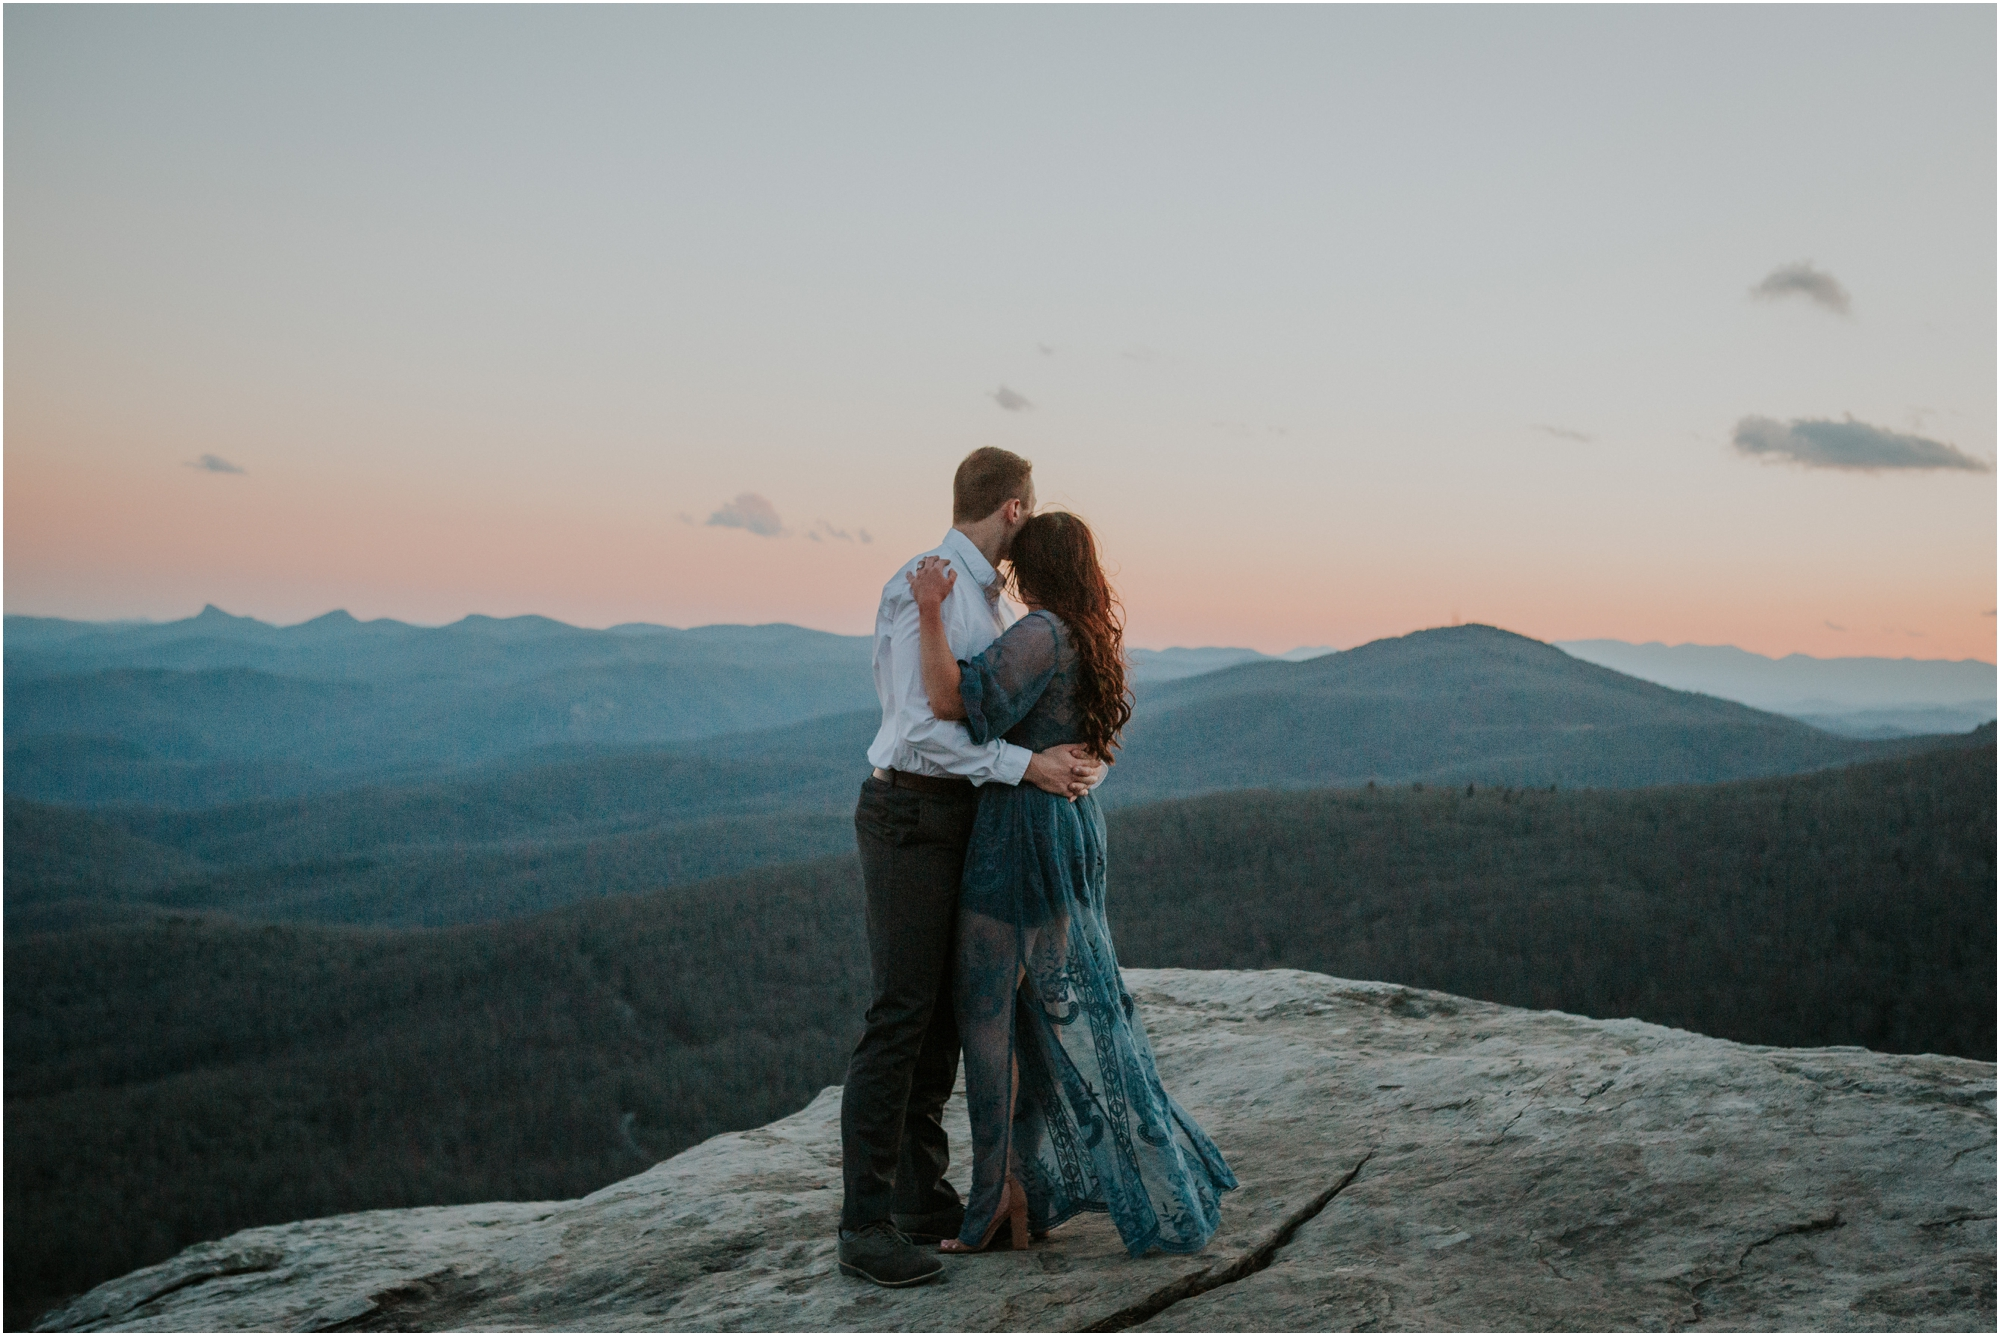 blue-ridge-parkway-engagement-session-north-carolina-boone-blowing-rock-northeast-tennessee-katy-sergent-photography_0033.jpg